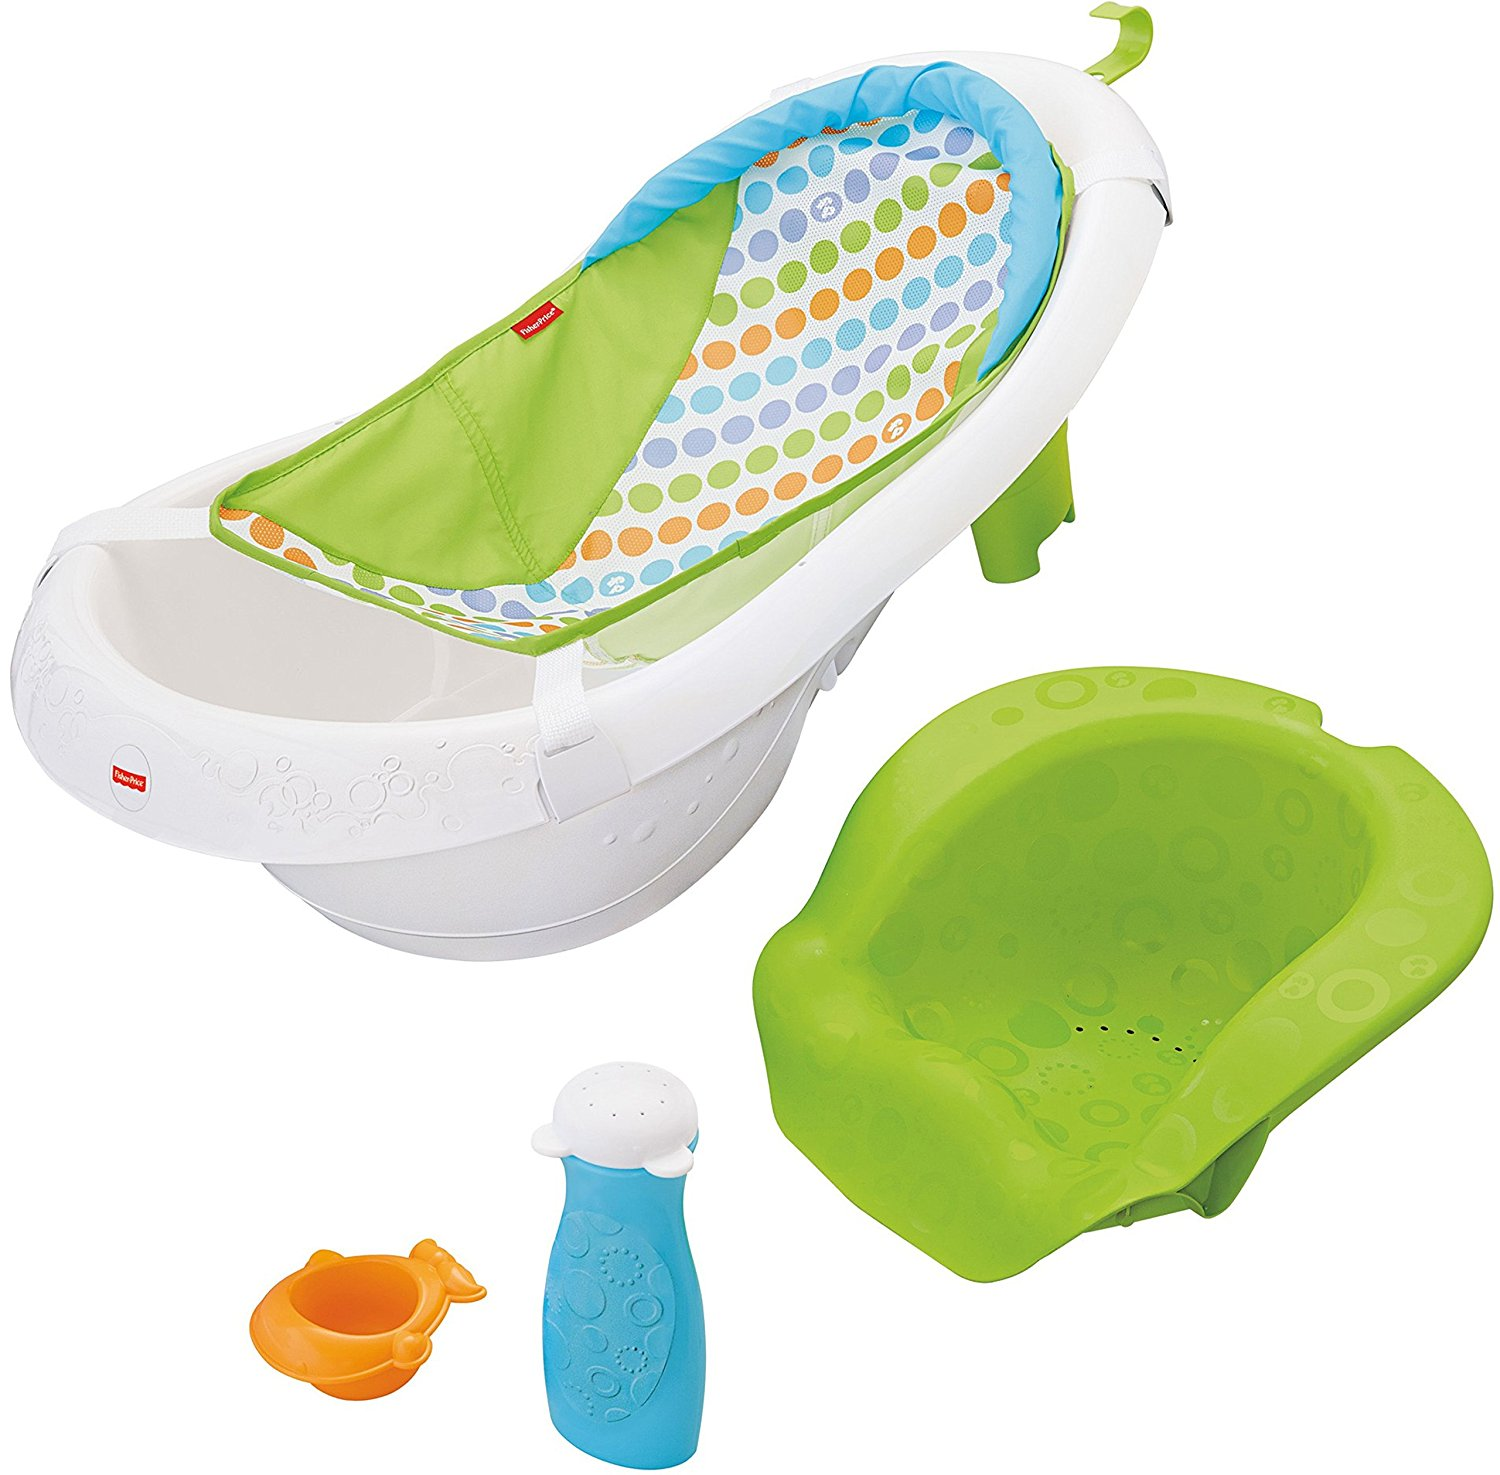 fisher-price 4-in-1 sling n seat tub, best infant tubs, infant tubs, convertible tubs, toddler tubs, best toddler tubs